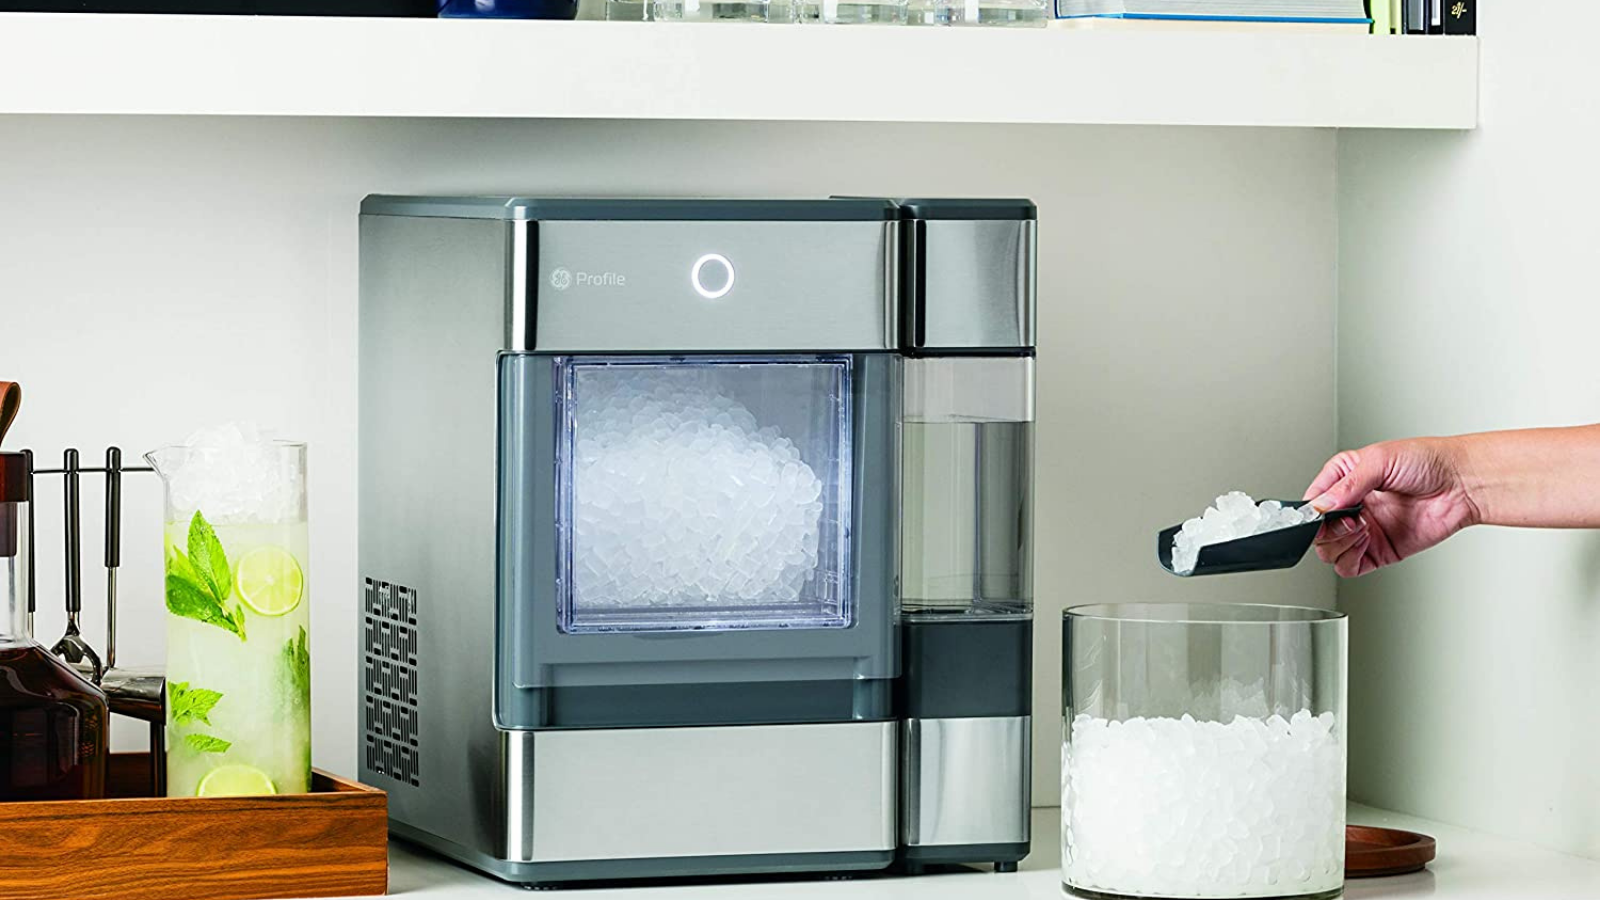 Prime Day 2020 The Popular Ge Profile Opal Nugget Ice Maker Is On Sale